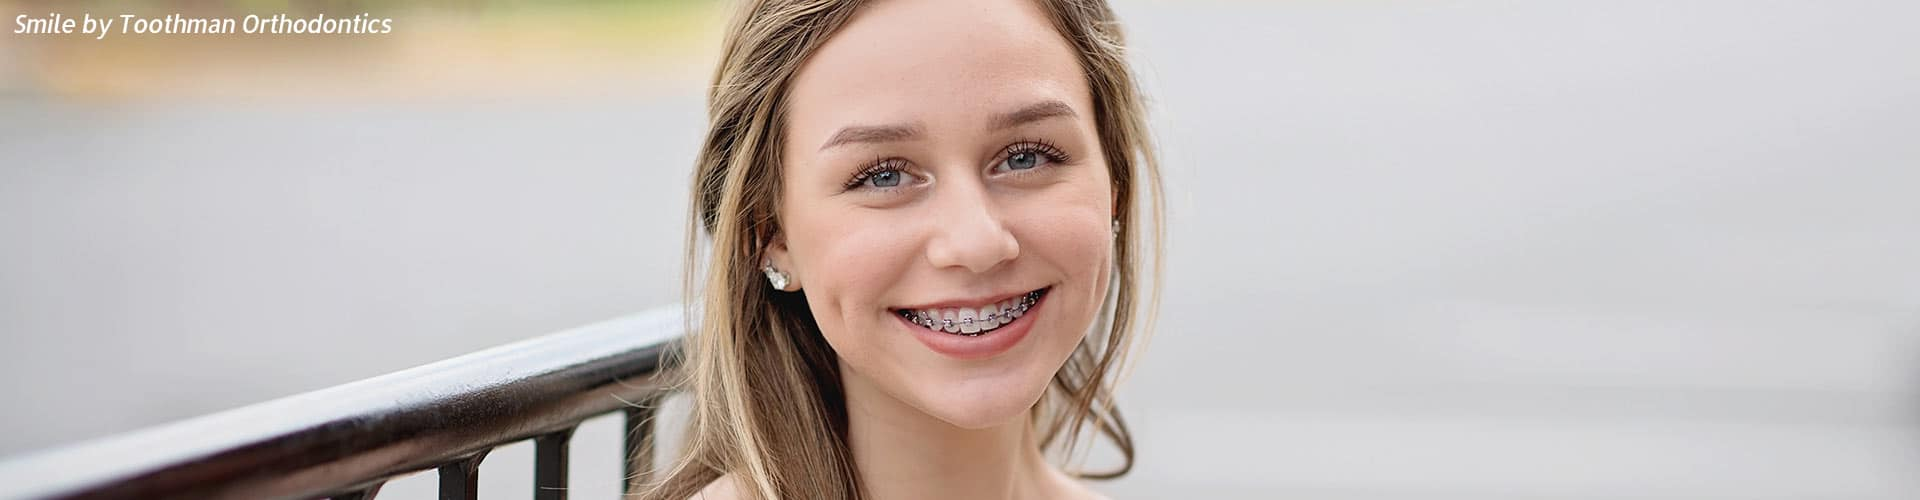 Braces 101 Toothman Orthodontics in Hagerstown Frederick MD